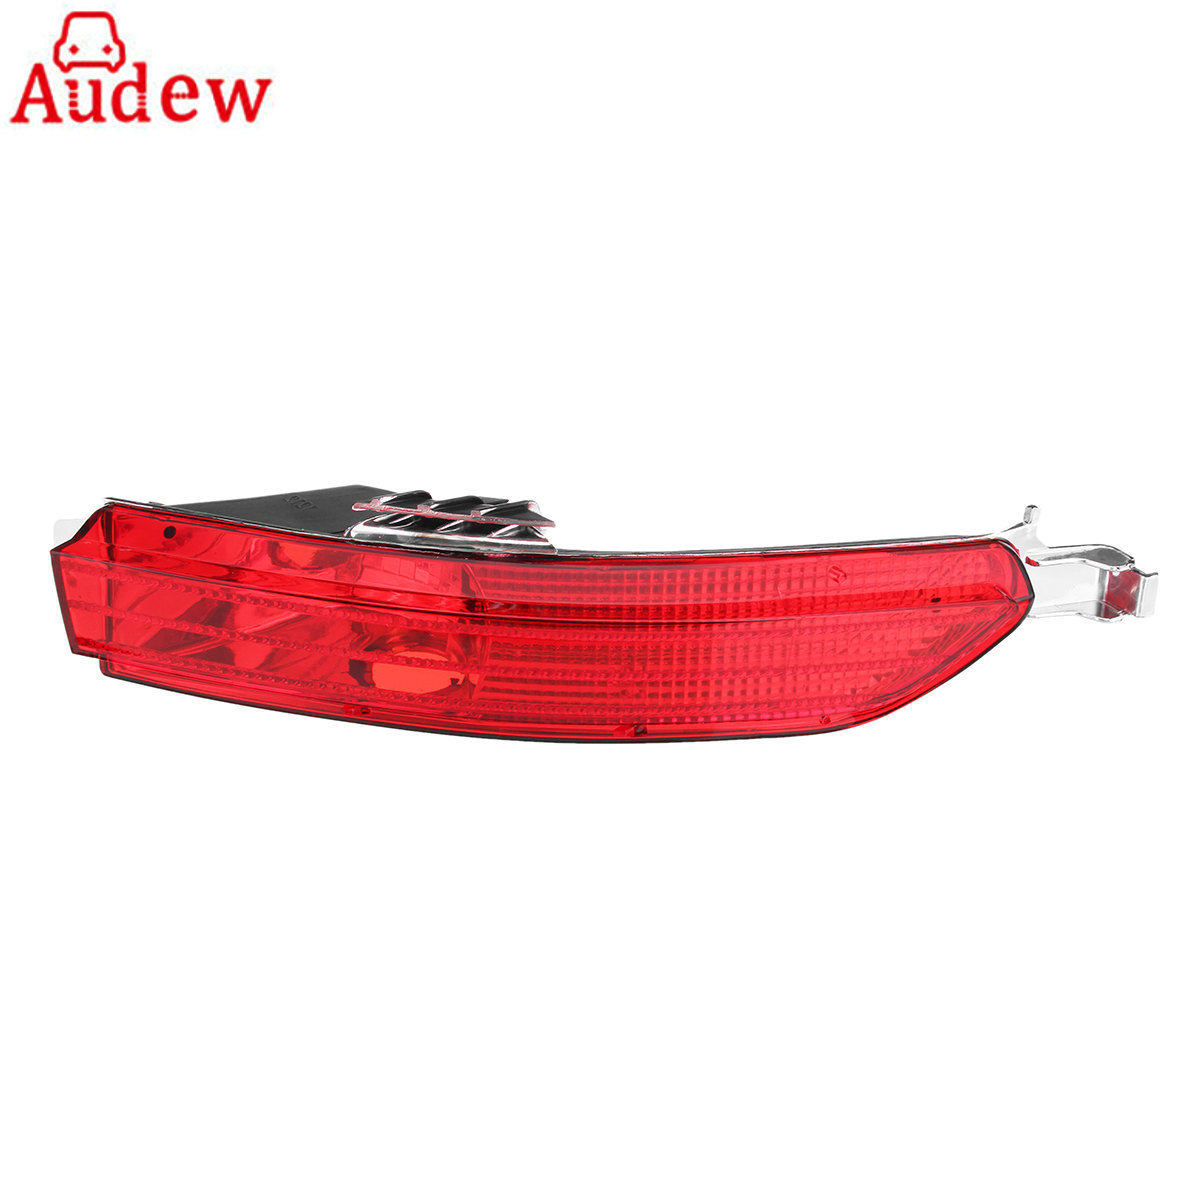 1Pcs Car Tail Light Turn Signal Lamp Right Rear Bumper Red Fog Light For VW TOUAREG 11-14 RHD free shipping for vw touareg 2015 2016 new led car fog light fog lamp right side passenger side